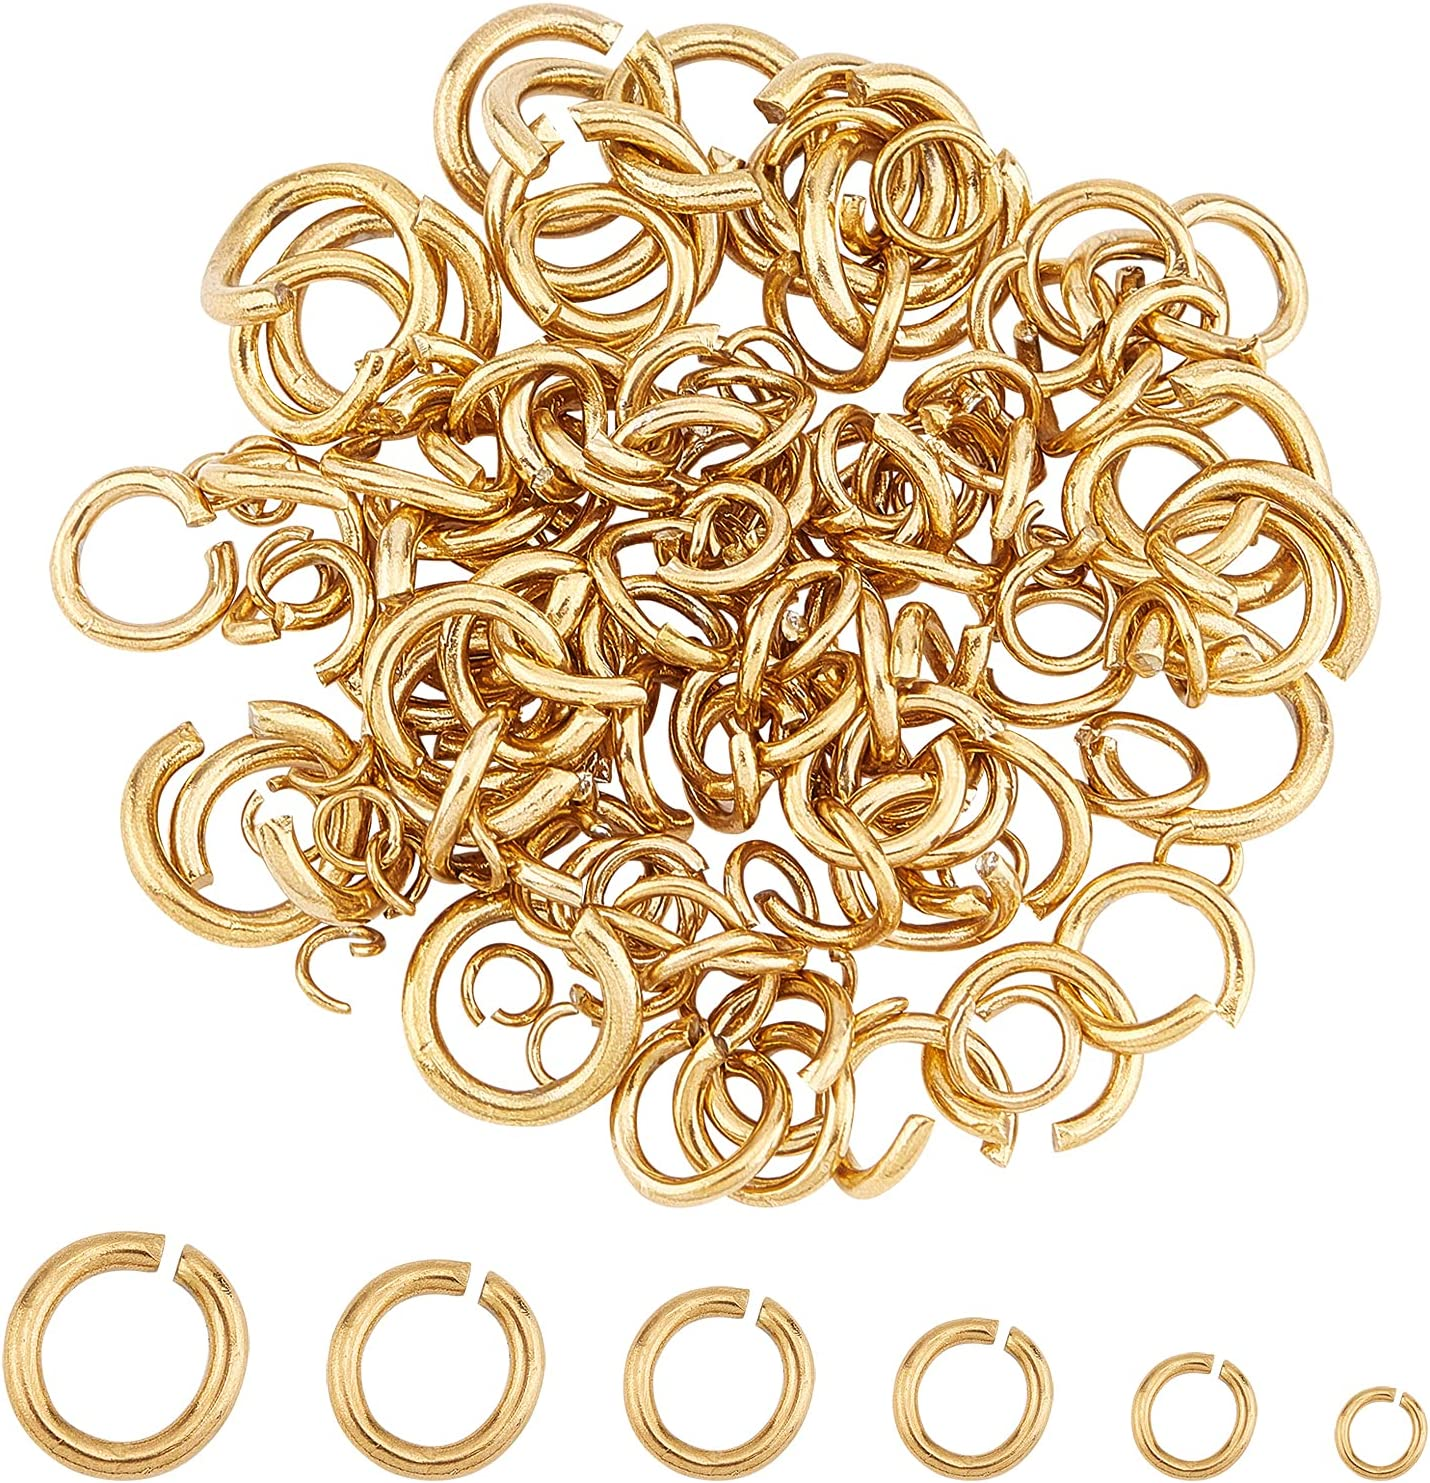 UNICRAFTALE 6 Sizes About 120pcs Connect Golden Rings Minneapolis Mall Jumps Open SALENEW very popular